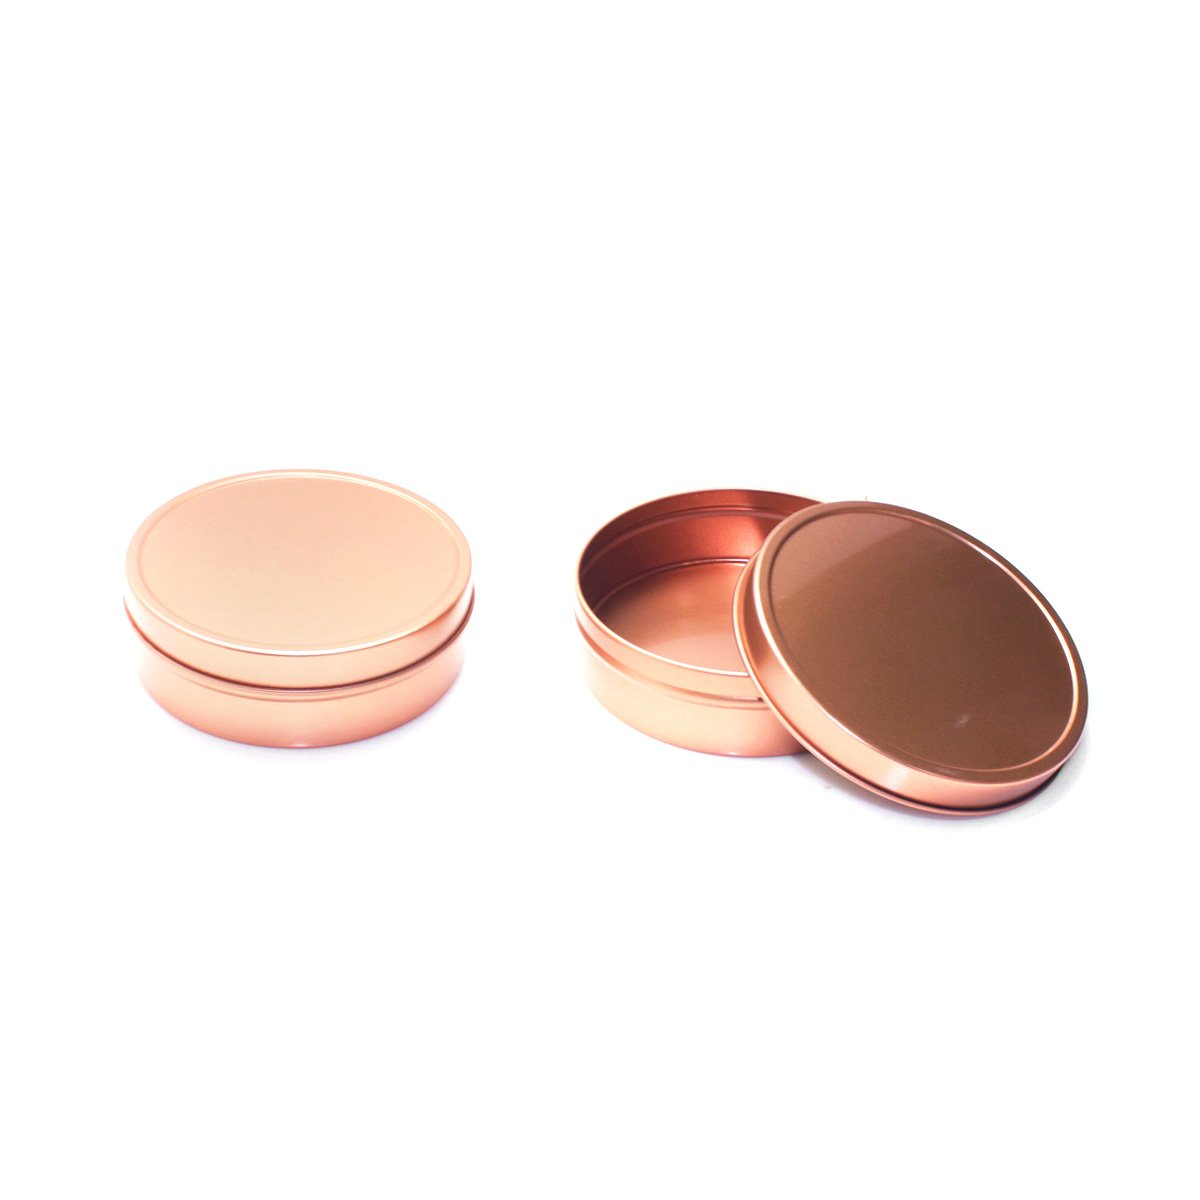 Mimi Pack ALL Shallow Solid Slip Top Tins (8 oz, Rose Gold) by Mimi Pack (Image #6)